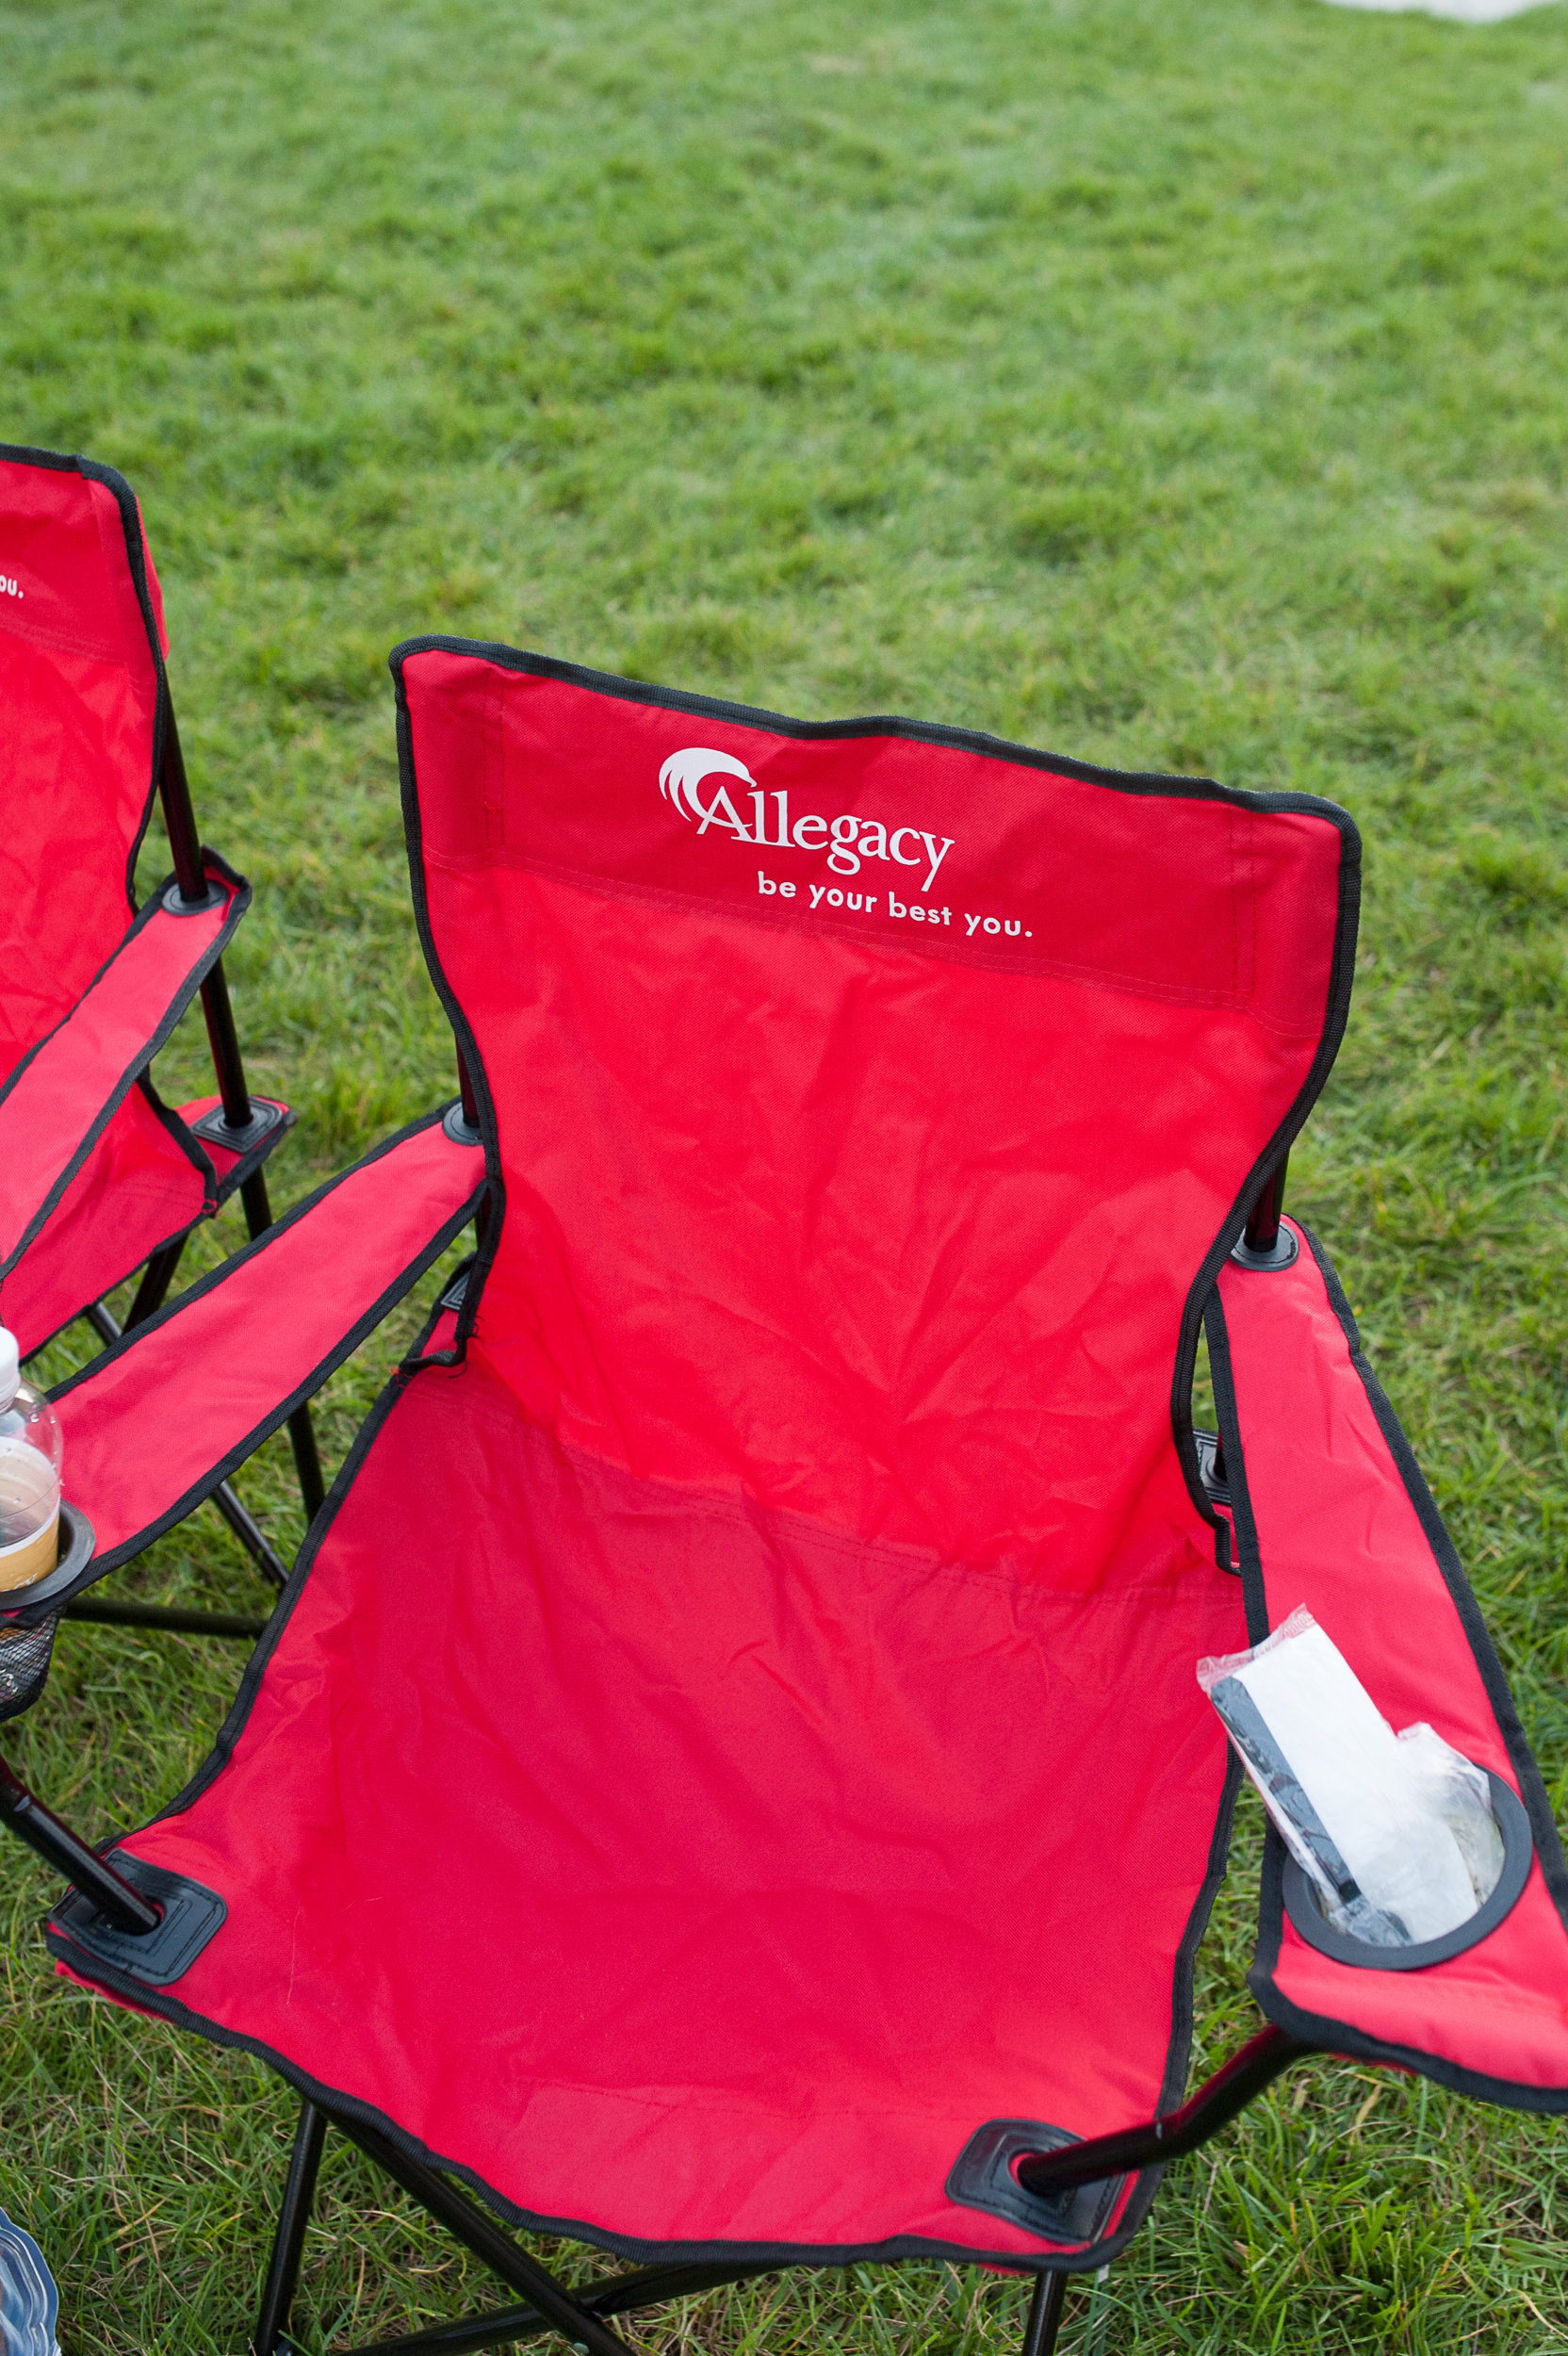 Branded Tailgate Chair